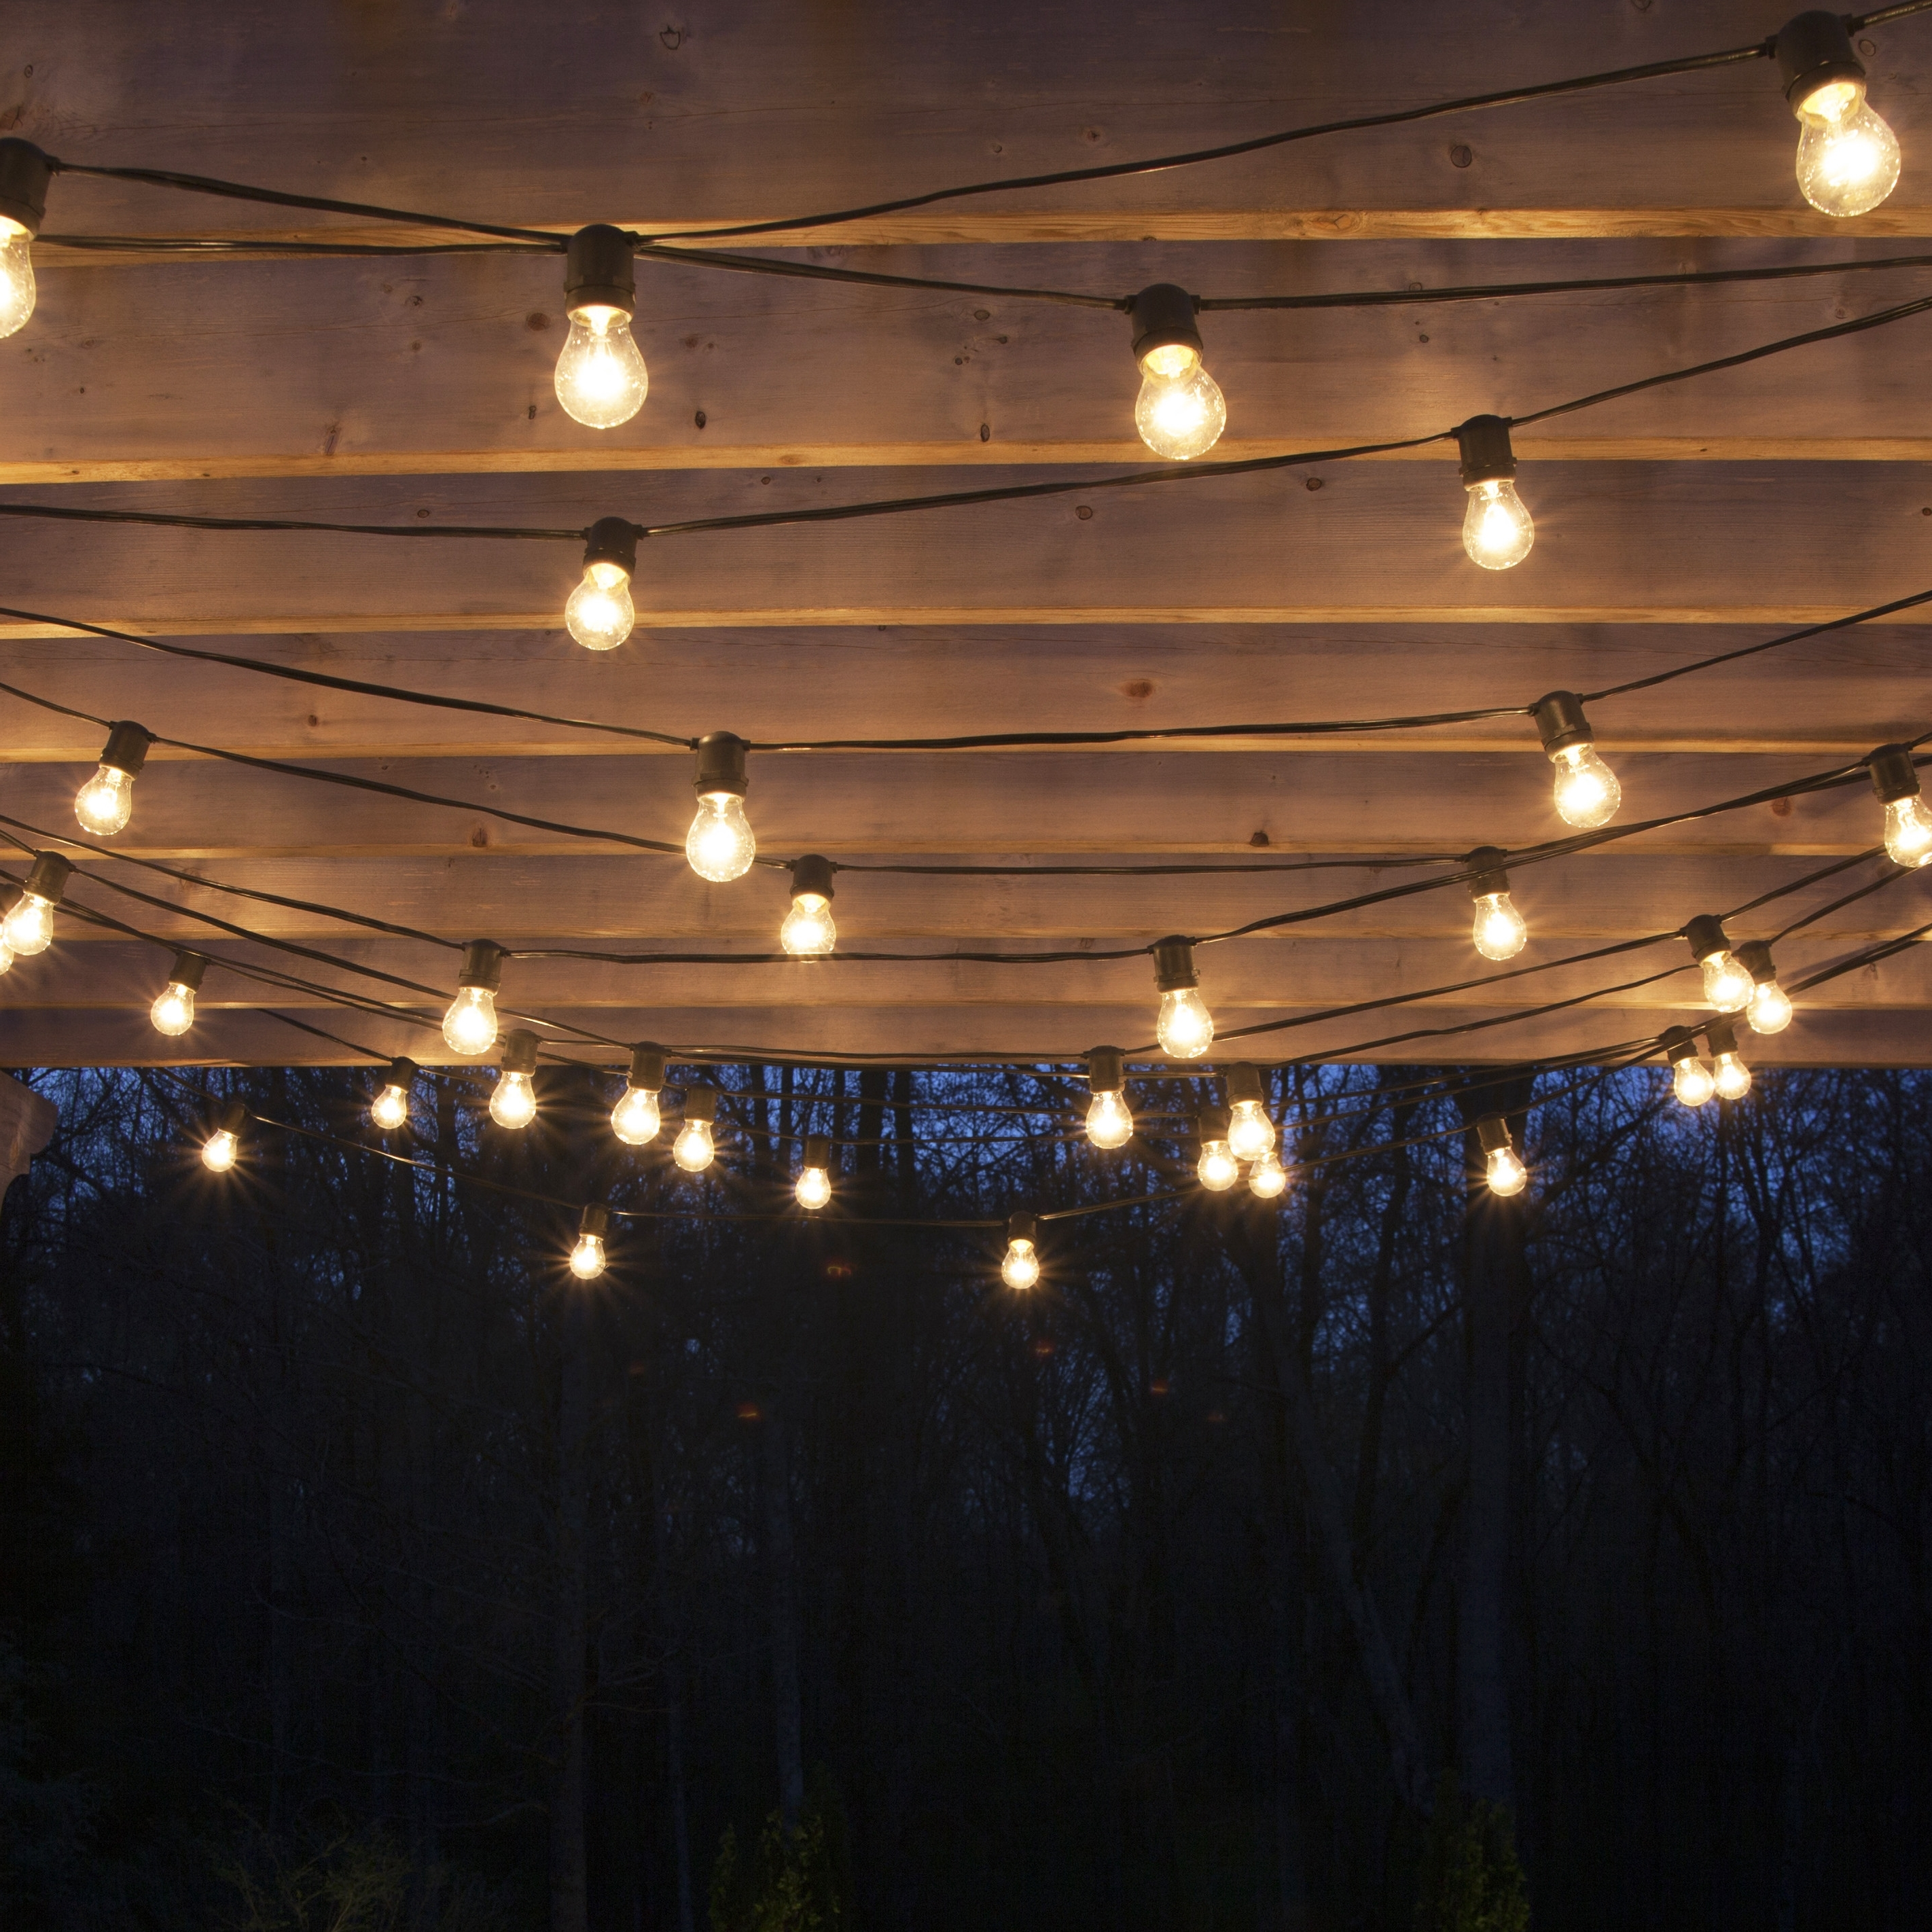 Diy : How Plan And Hang Patio Lights Lighting Pergolas Hanging With Regard To 2018 Solar Hanging Outdoor Patio Lights (View 8 of 20)